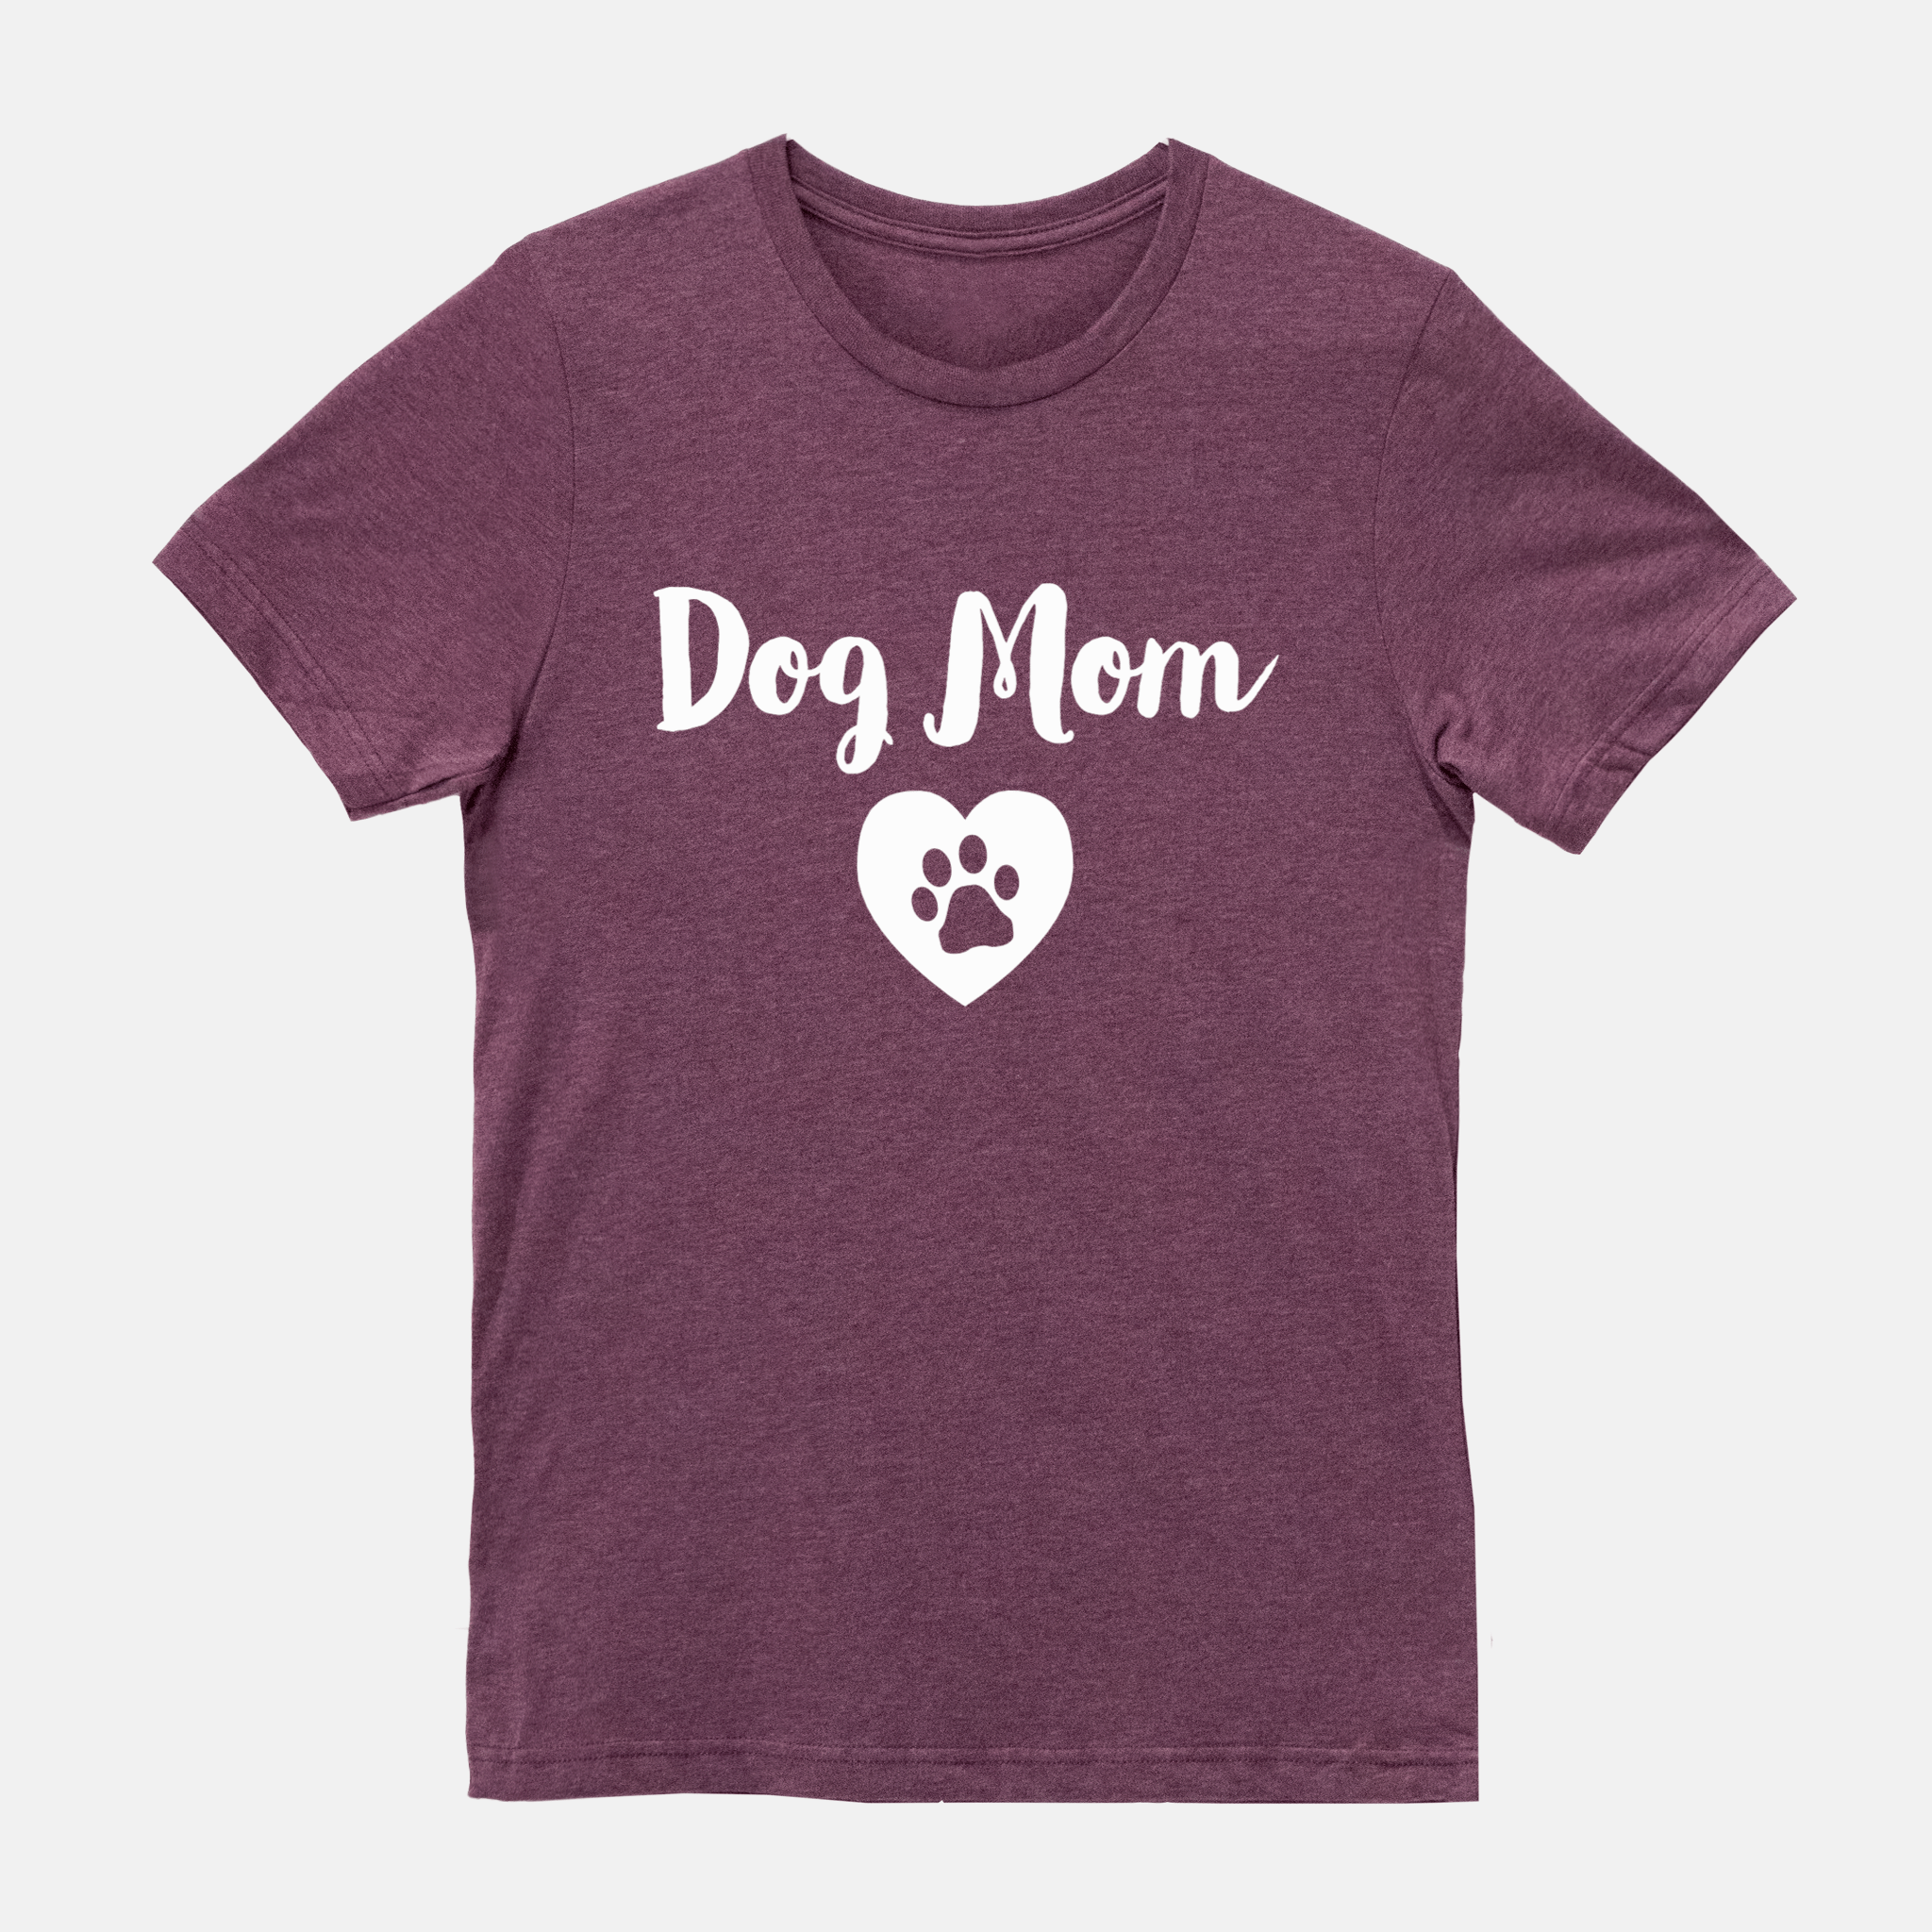 Dog Mom Short Sleeves Shirt